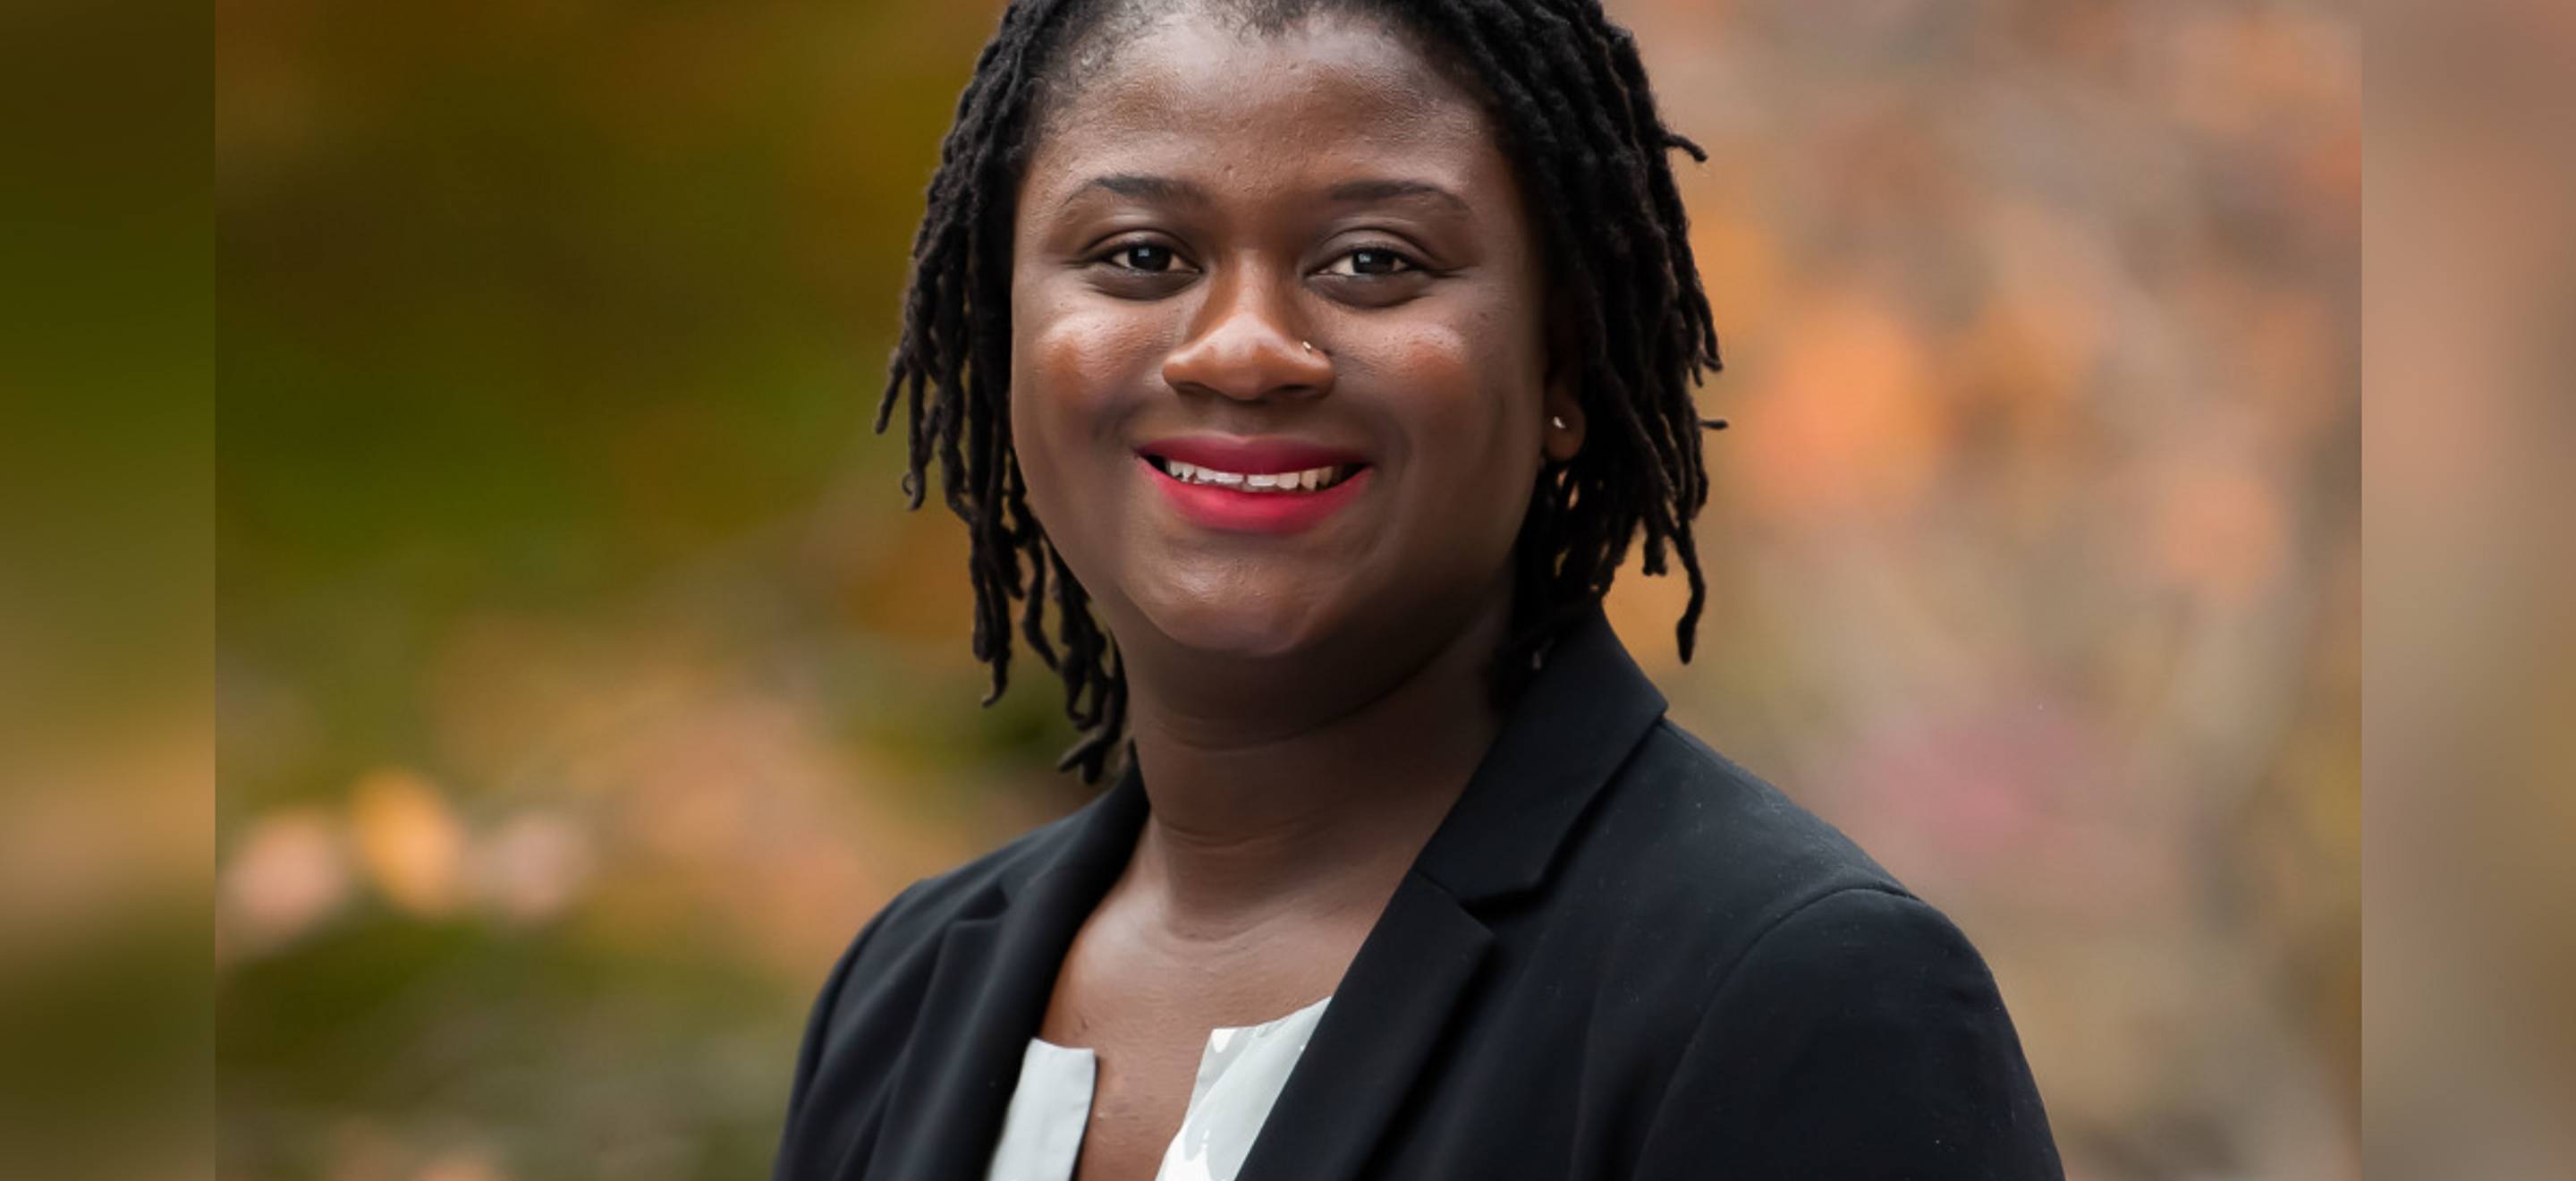 A headshot of IRAP alumna Samah Sisay. She is a Black woman wearing a black blazer and bright red lipstick, smiling brightly.